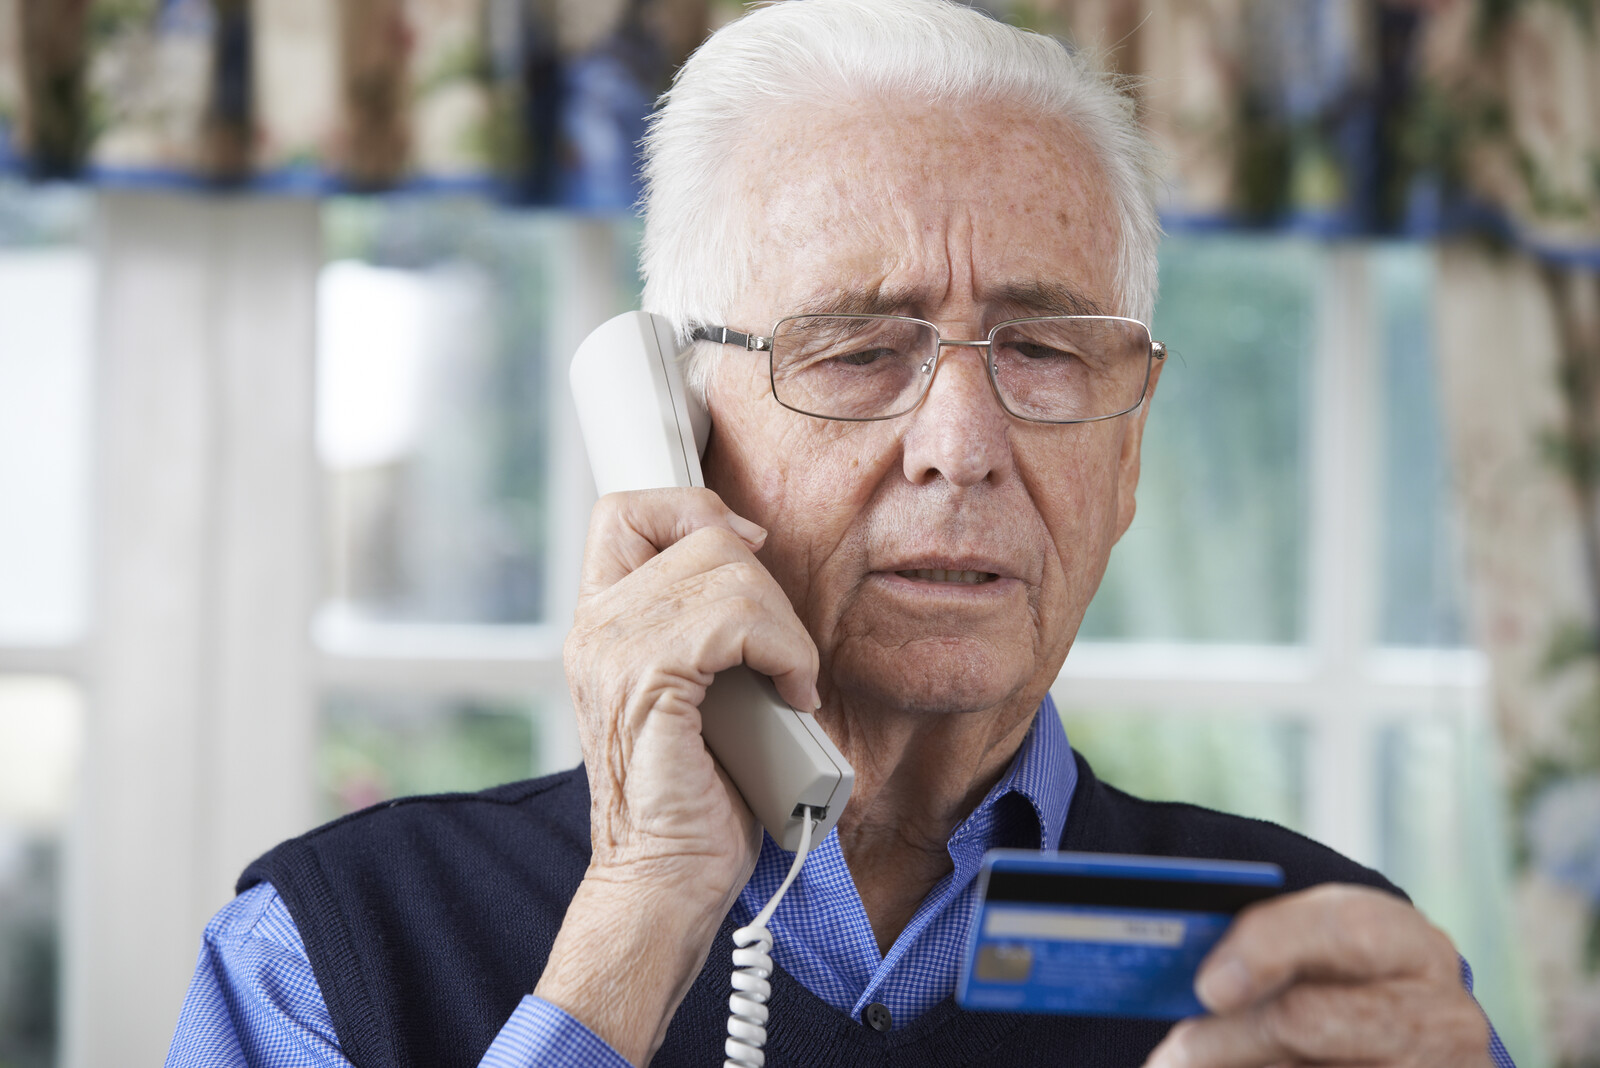 Senior man on the phone looking concerned giving his credit card number to the person on the other end of the line